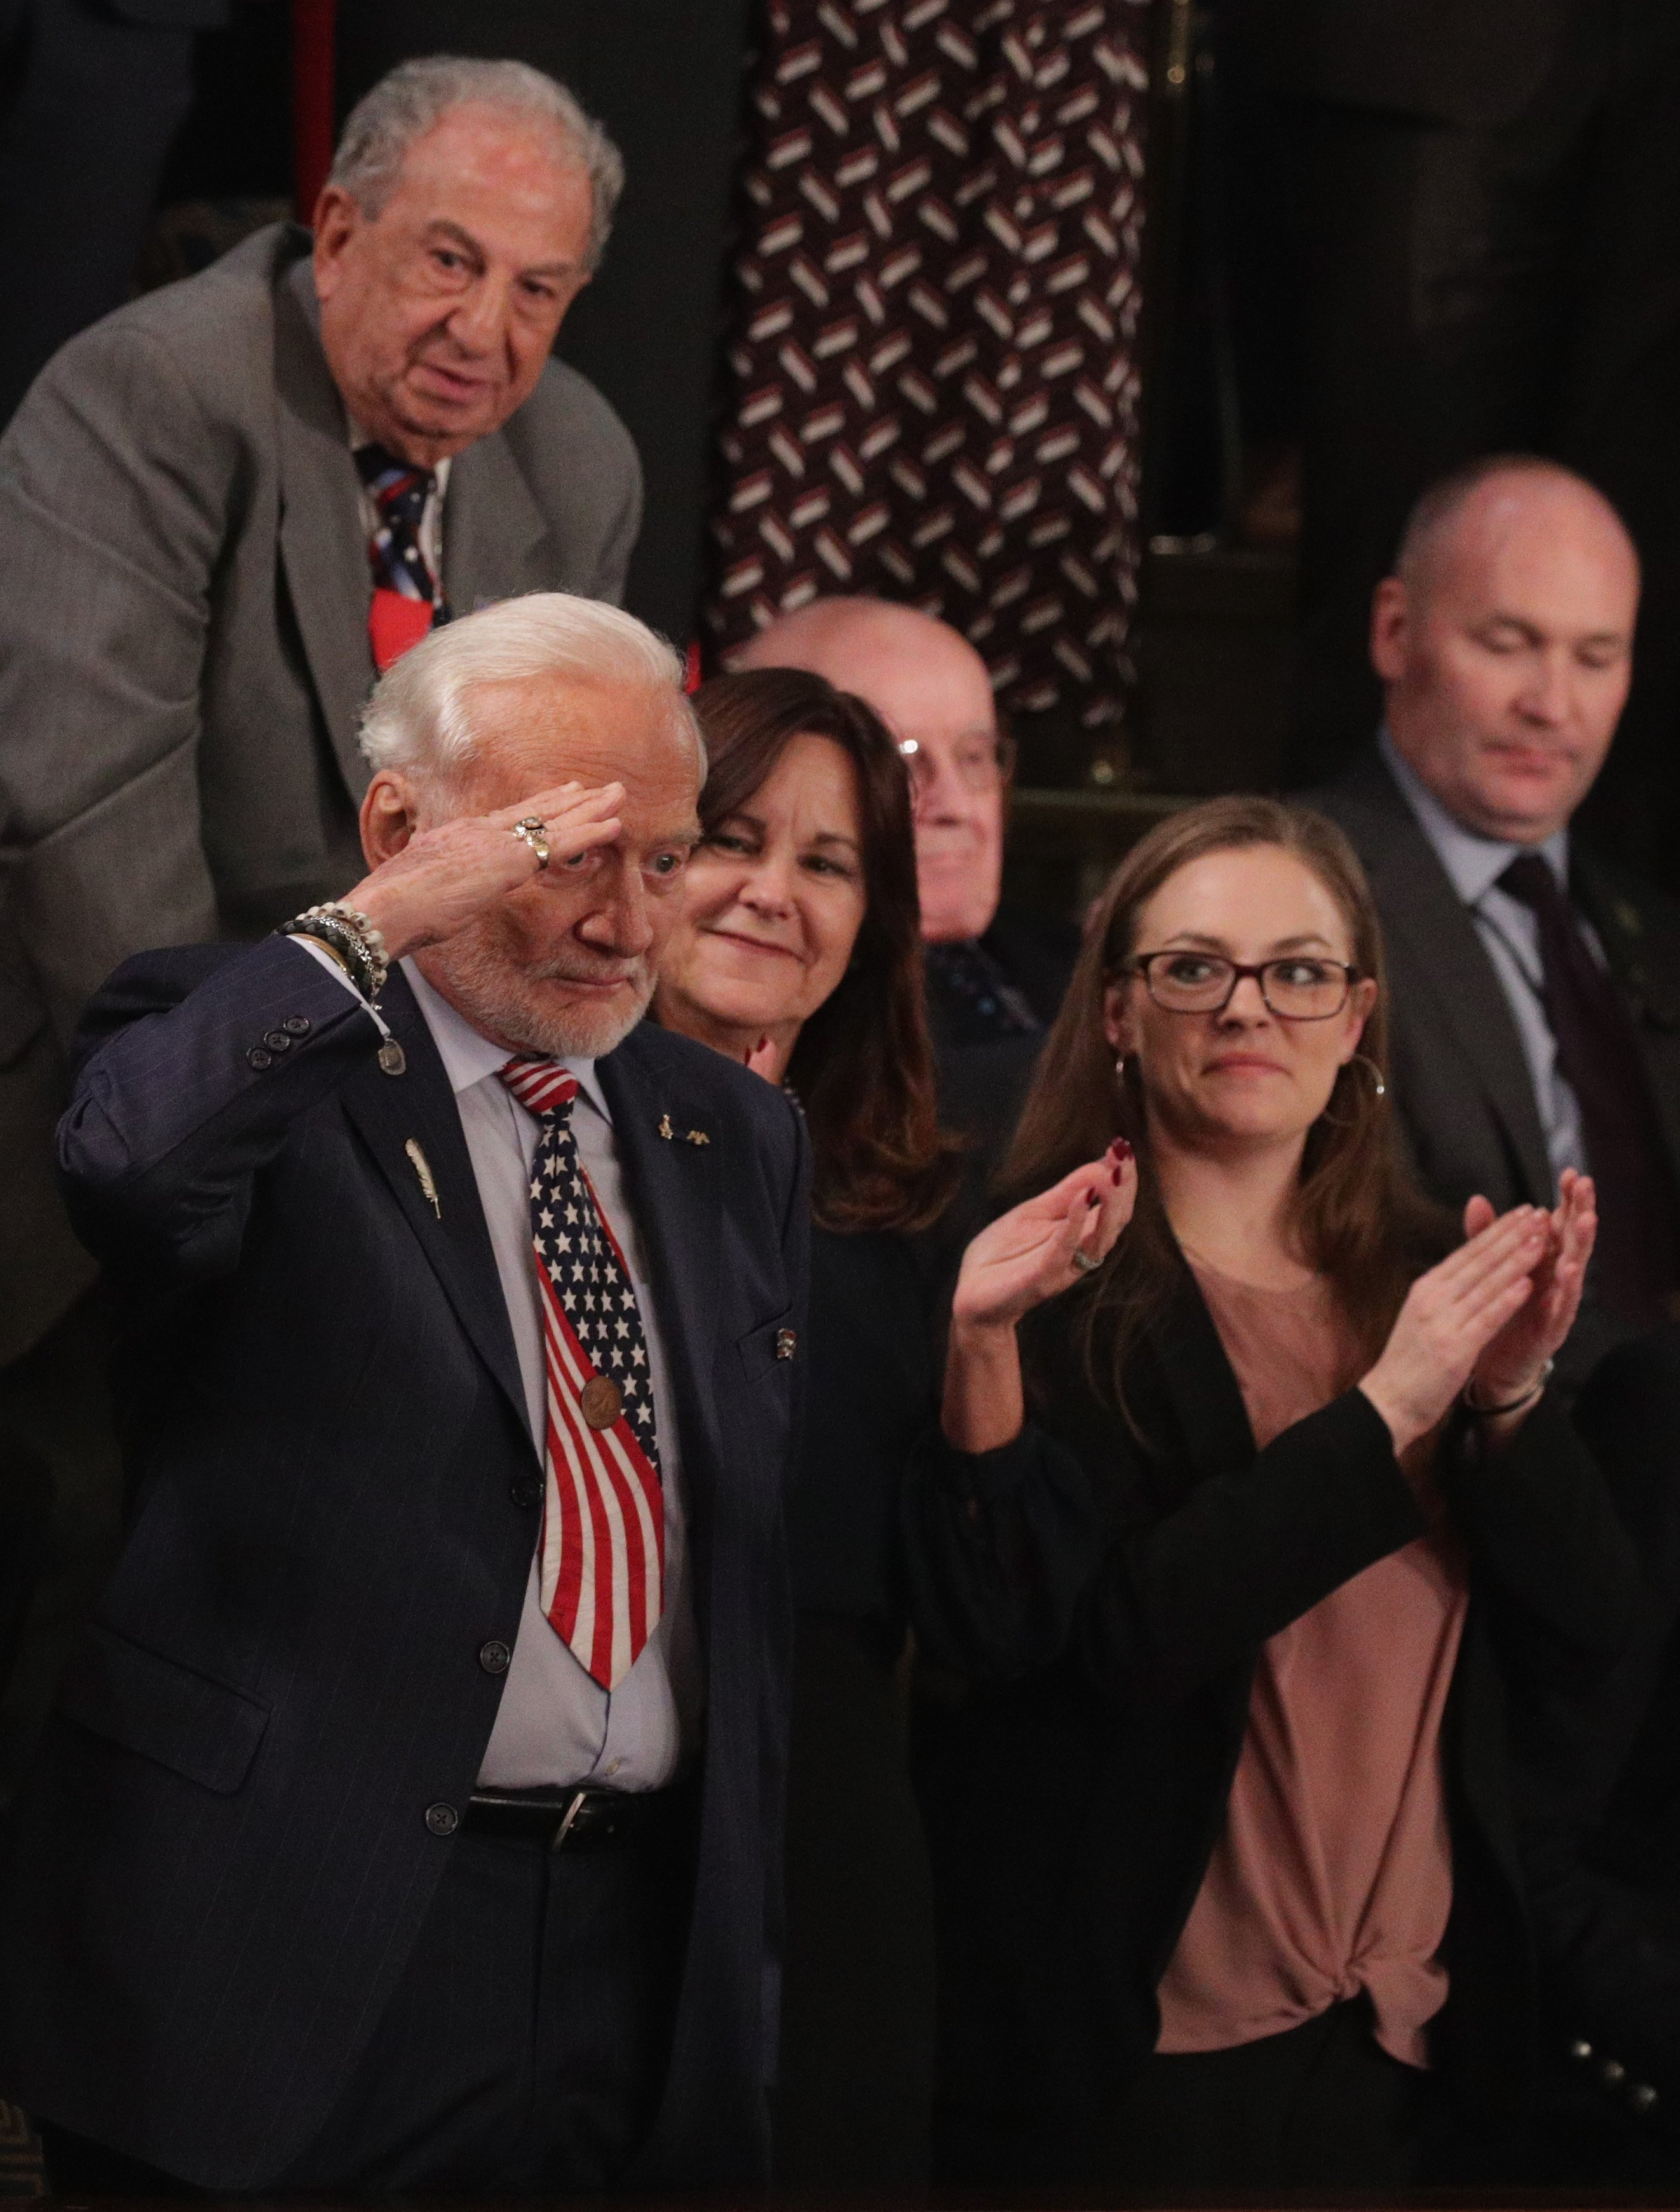 Buzz Aldrin saluting Donald Trump during the State of the Union address | Photo: Getty Images